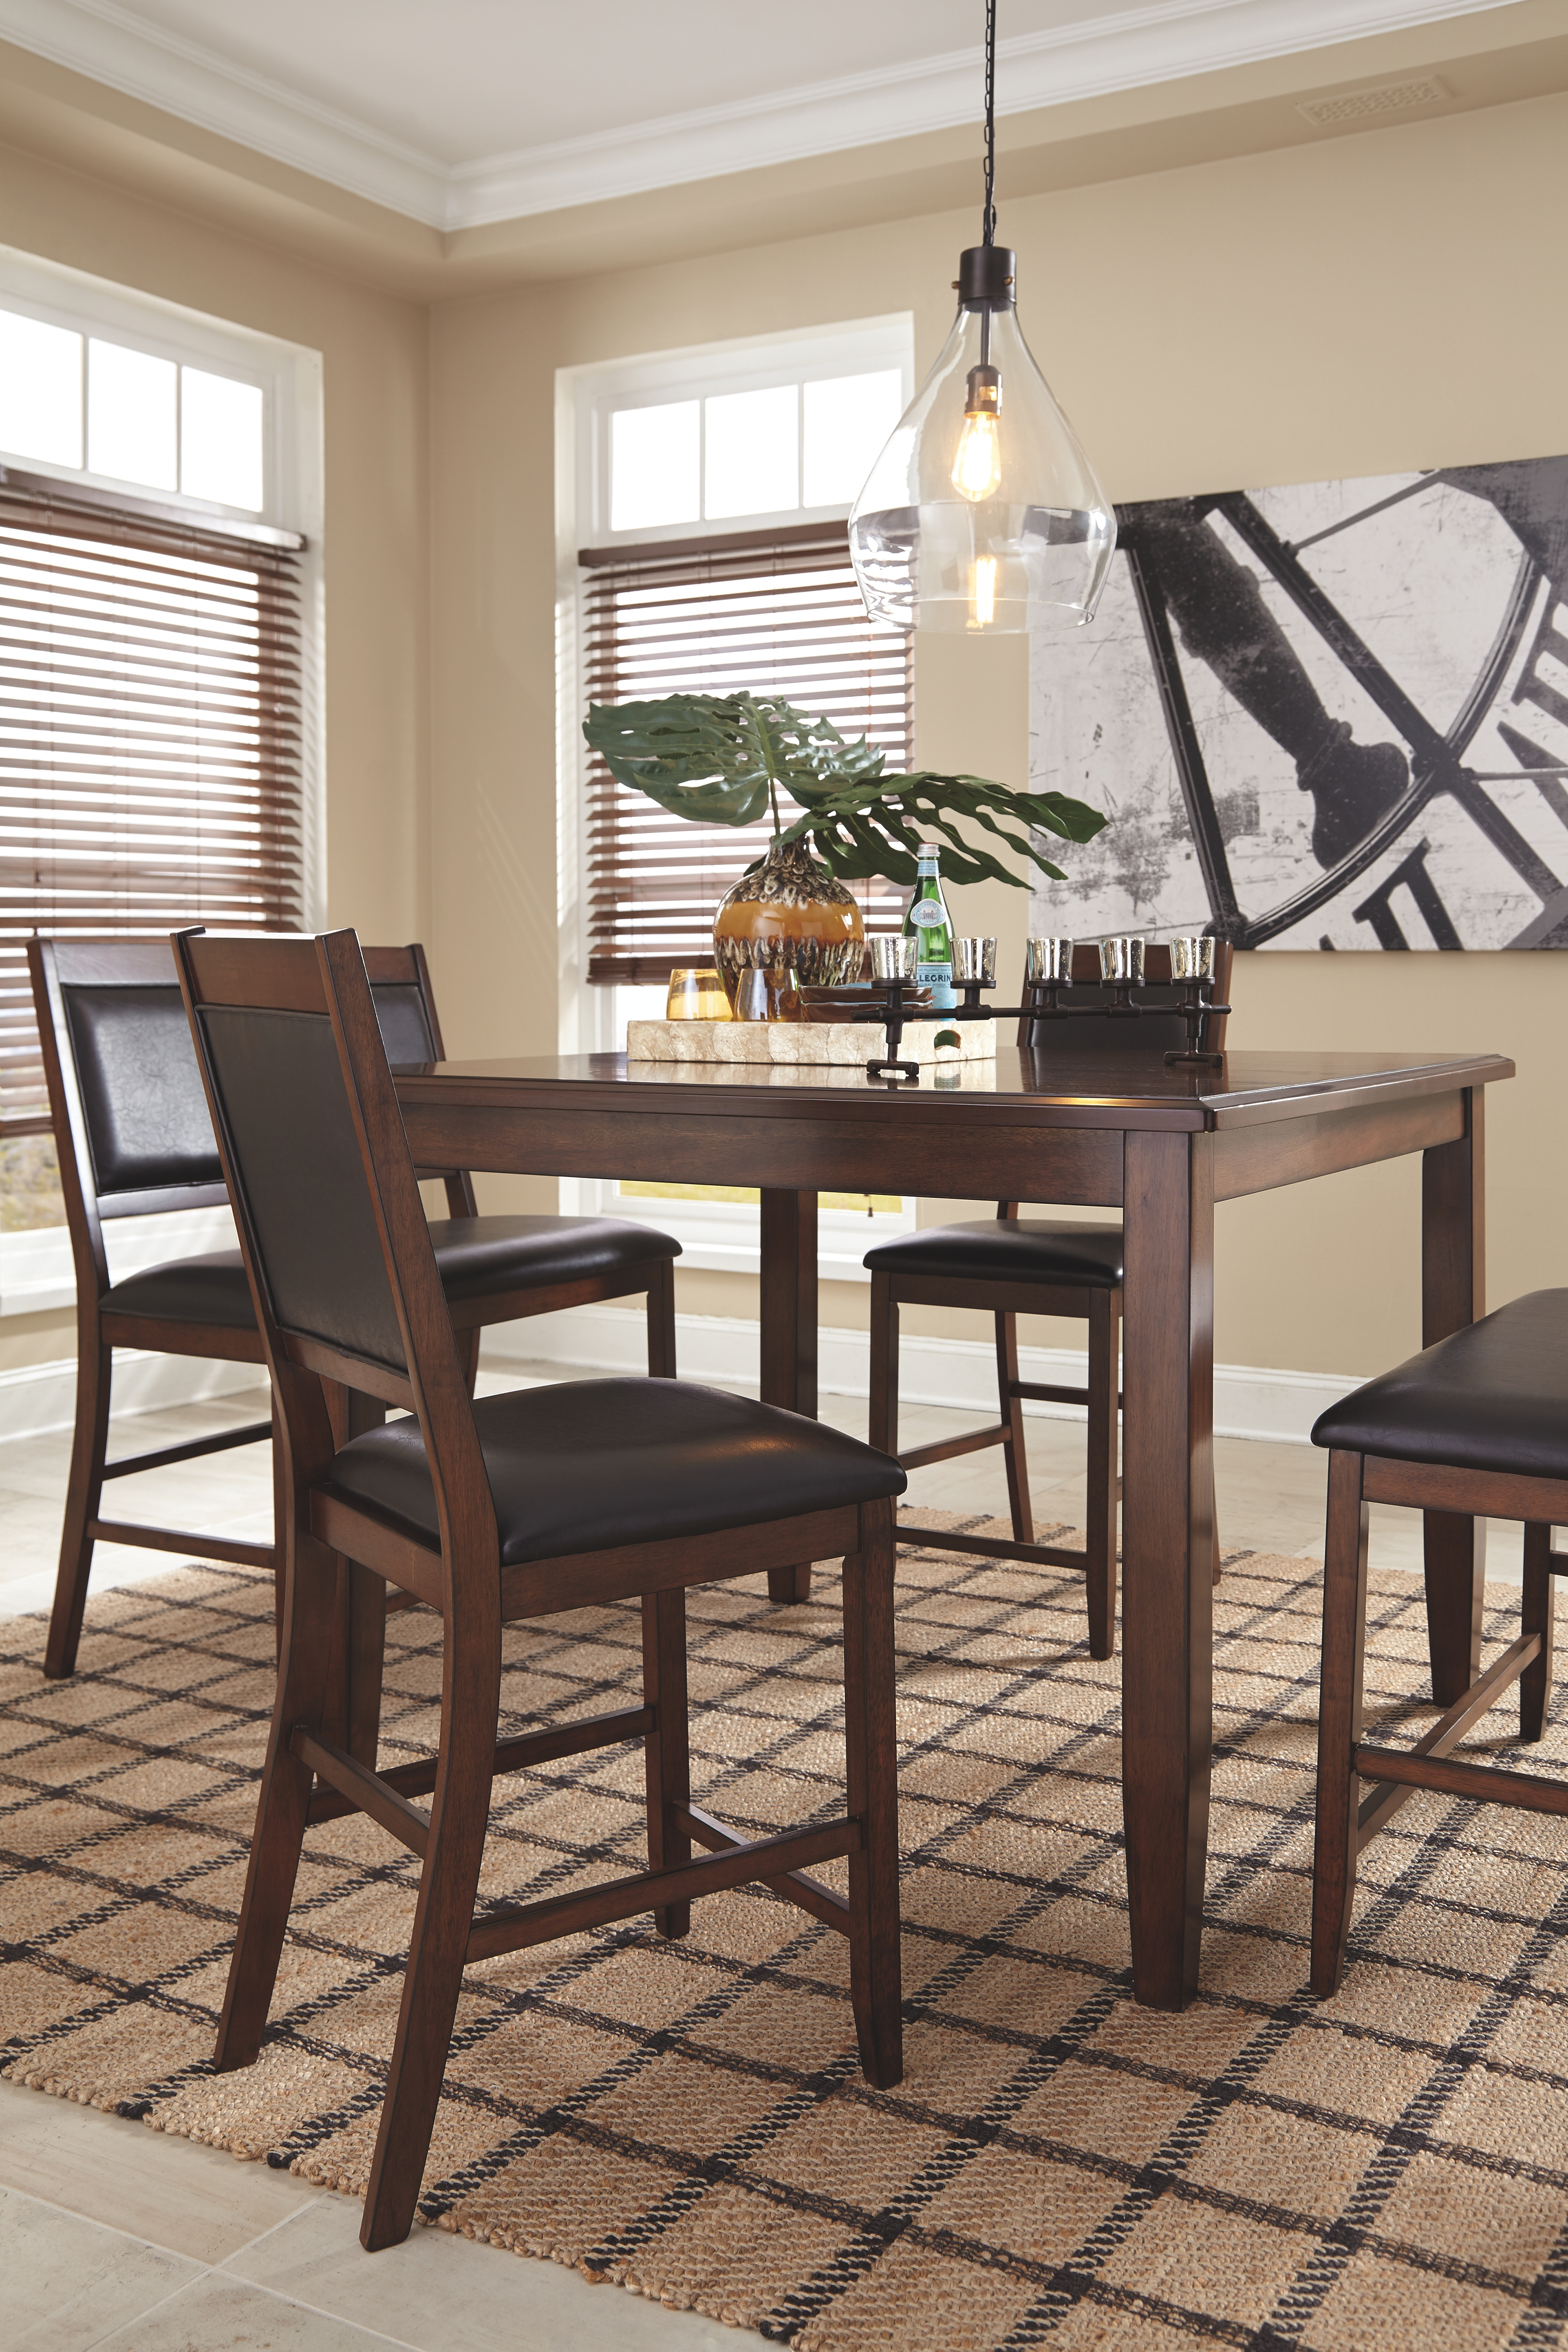 Meredy Counter Height Dining Room Table And Bar Stools Set Of 5 By Signature Design By Ashley 451325699 Turner S Budget Furniture